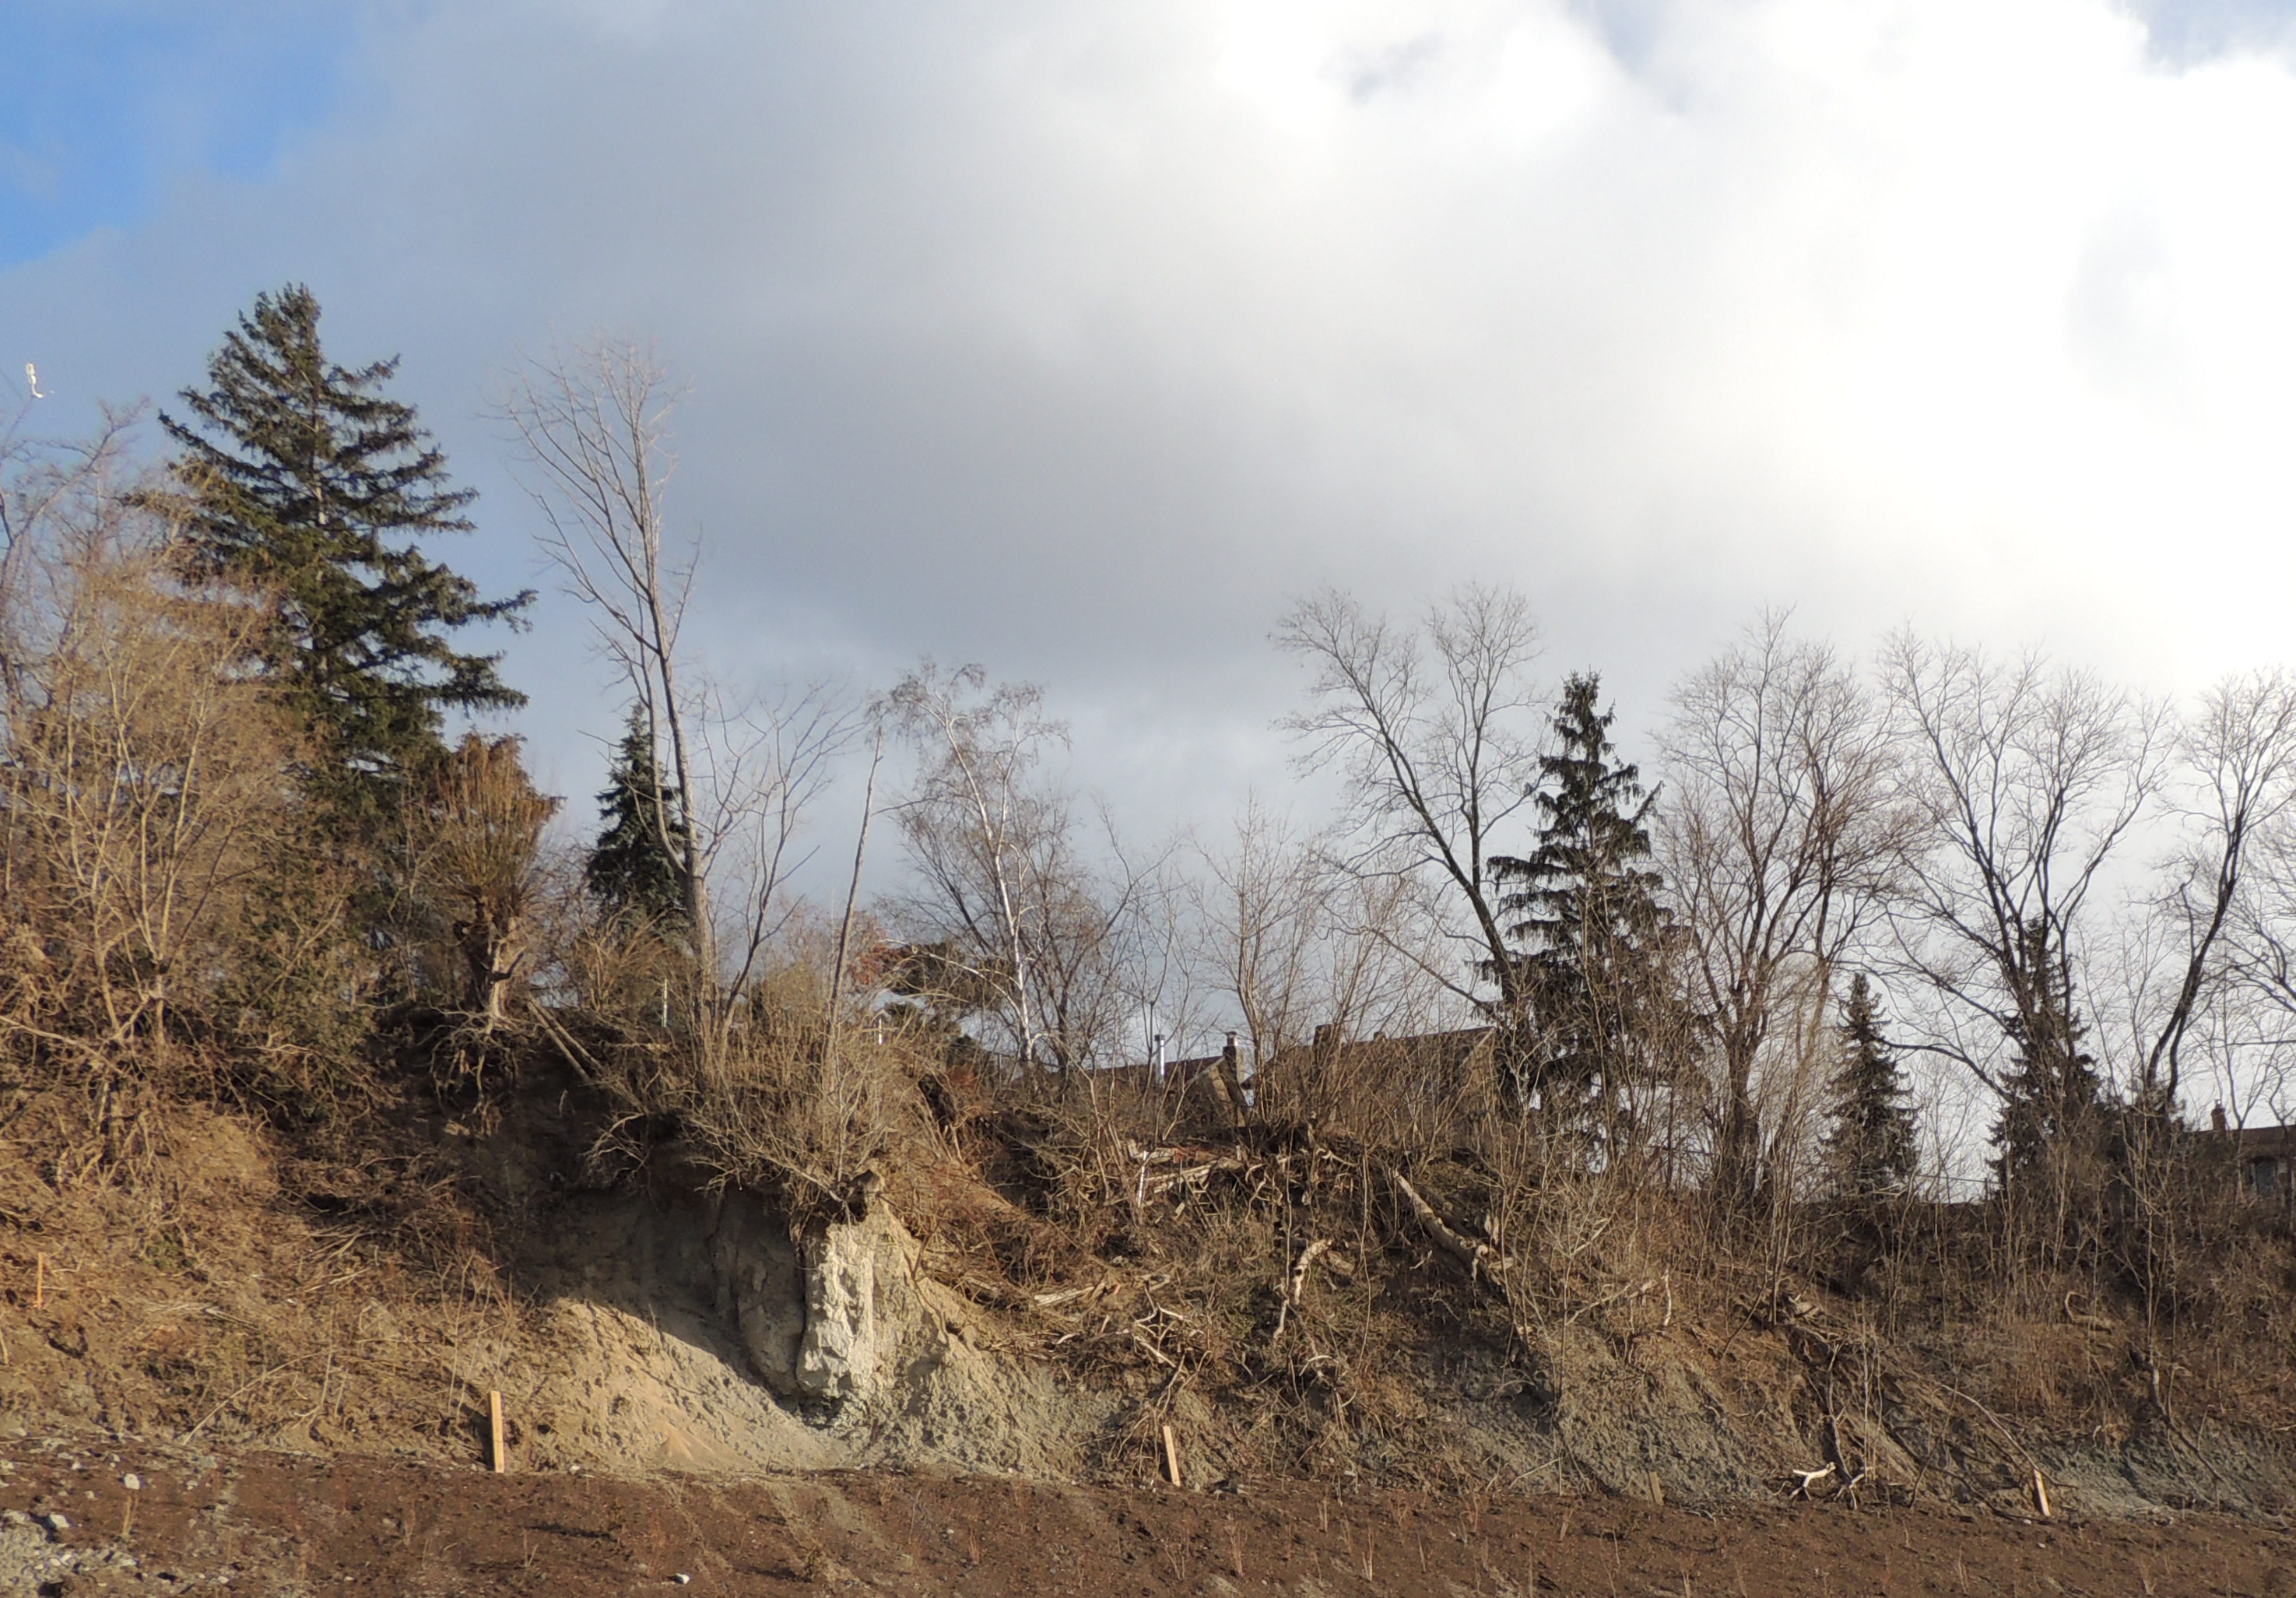 Visible erosion problems and slope failures along the upper slope of a valley wall